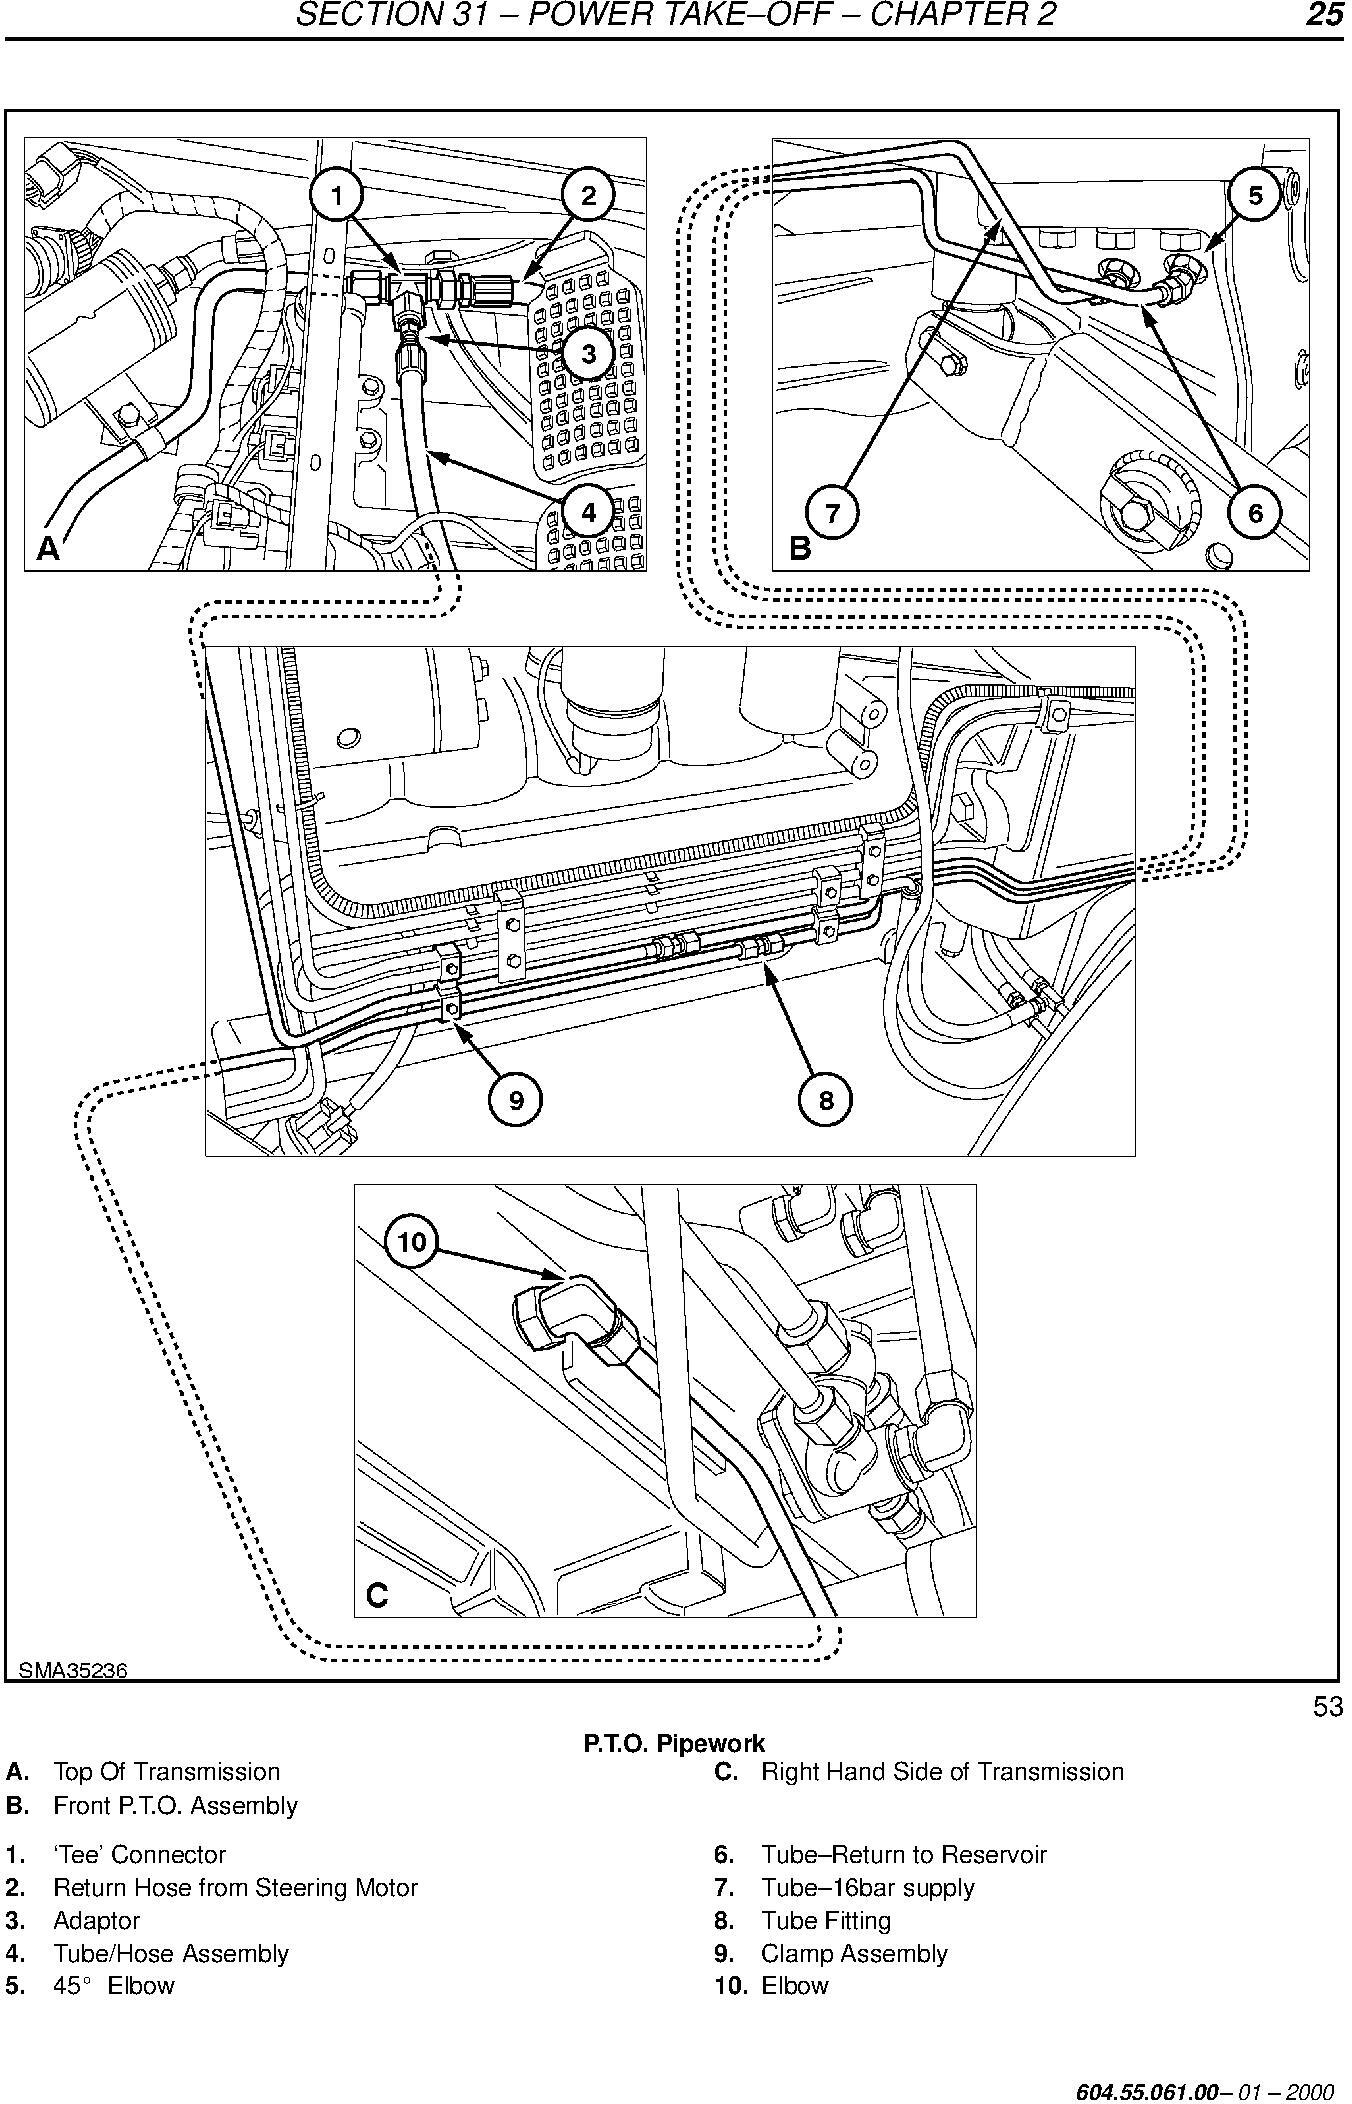 New Holland TM120, TM130, TM140, TM155, TM175, TM190 Service Manual - 3